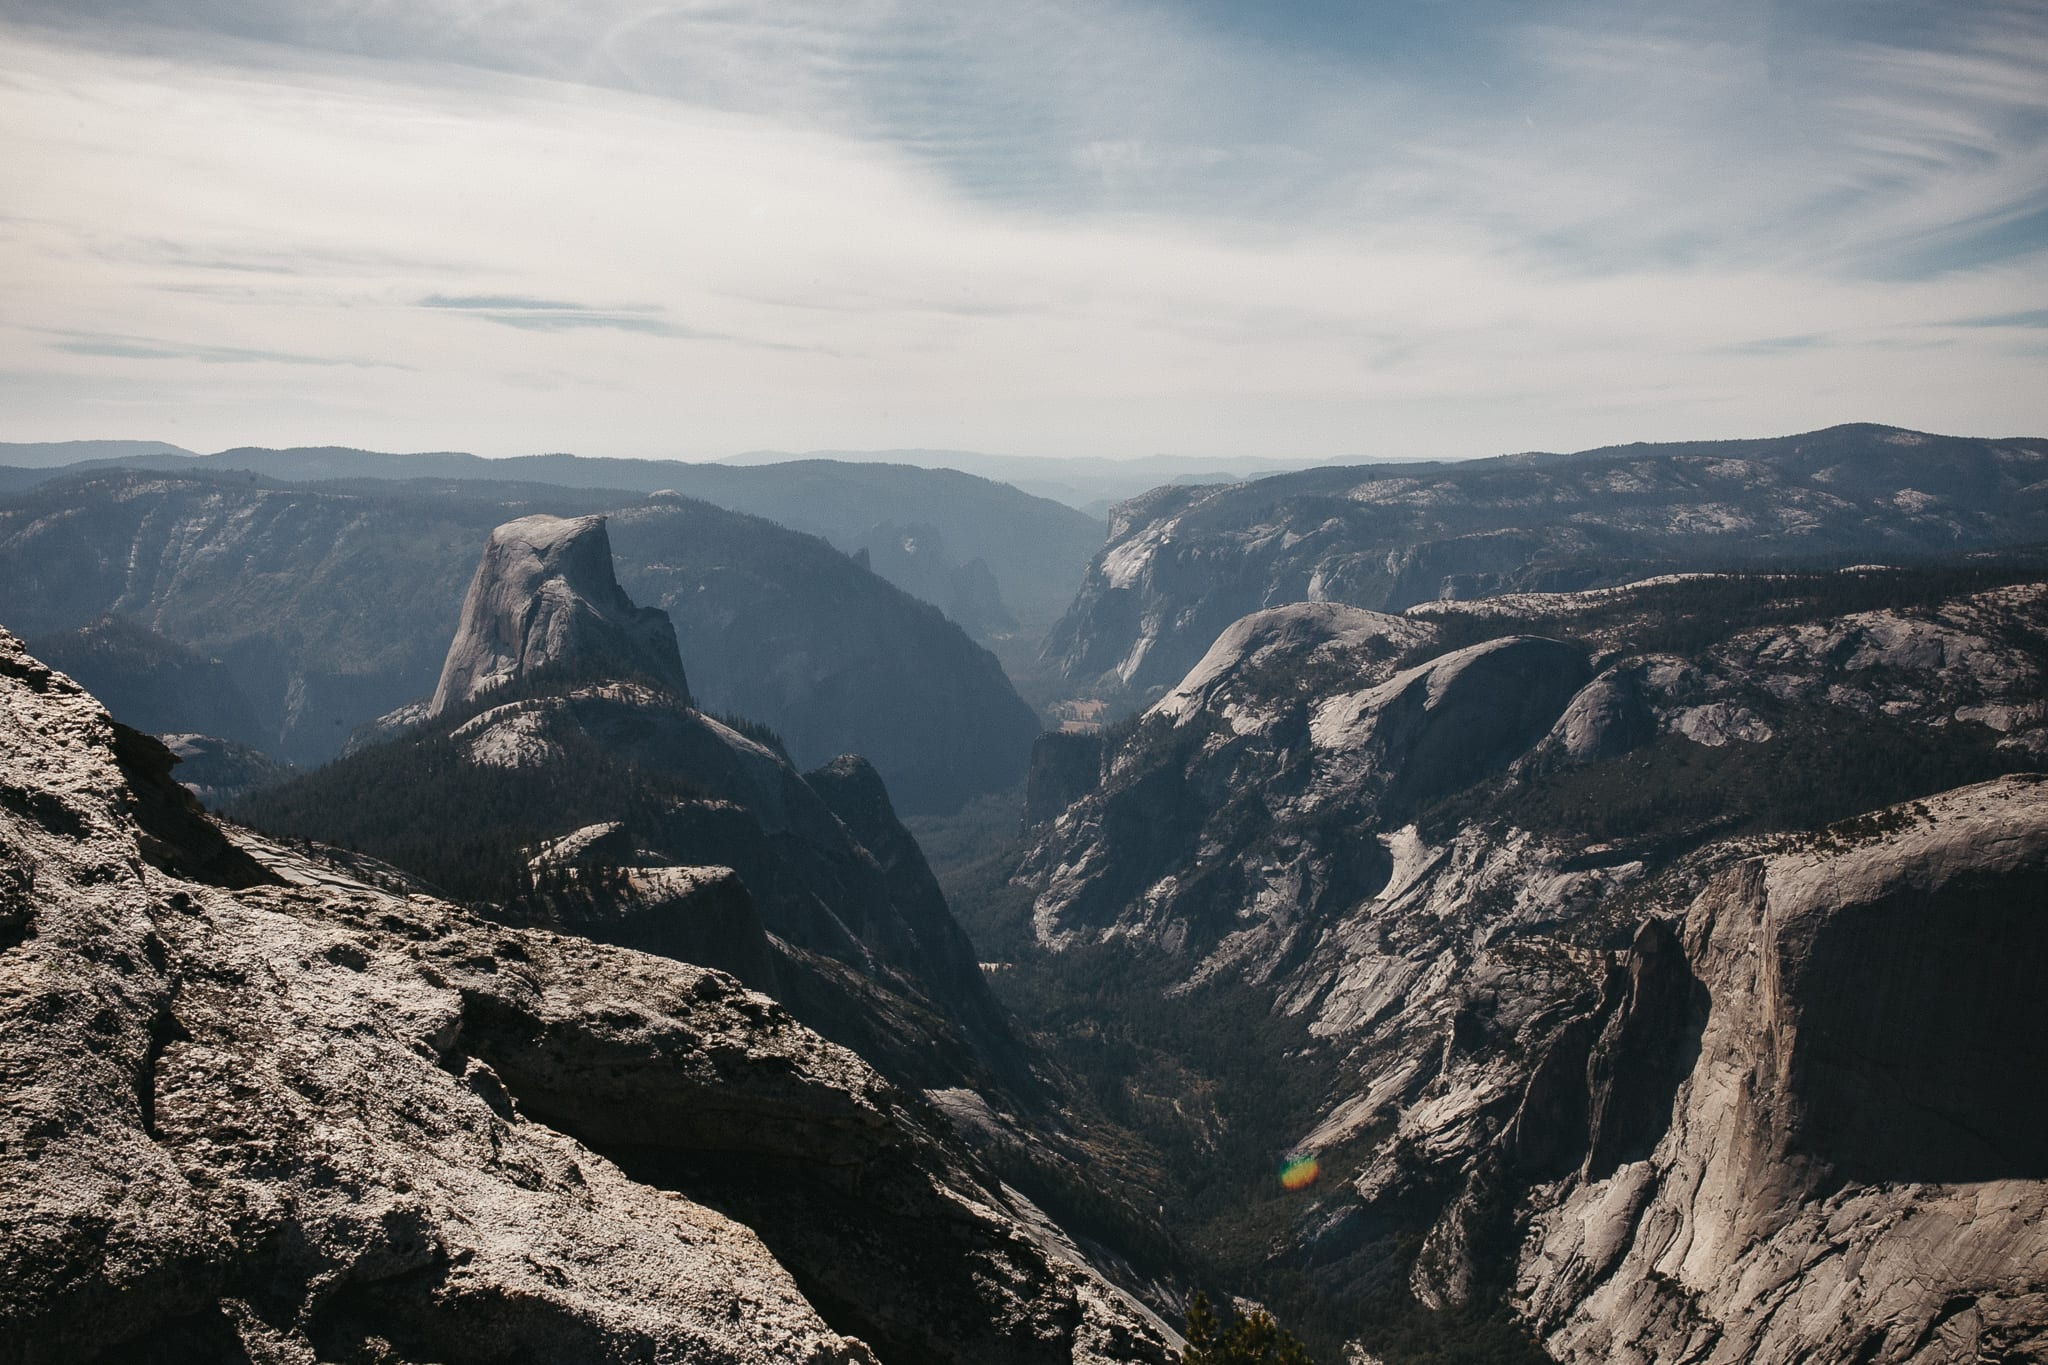 clouds-rest-yosemite-california-engagement-lifestyle-adventure-photographer-6